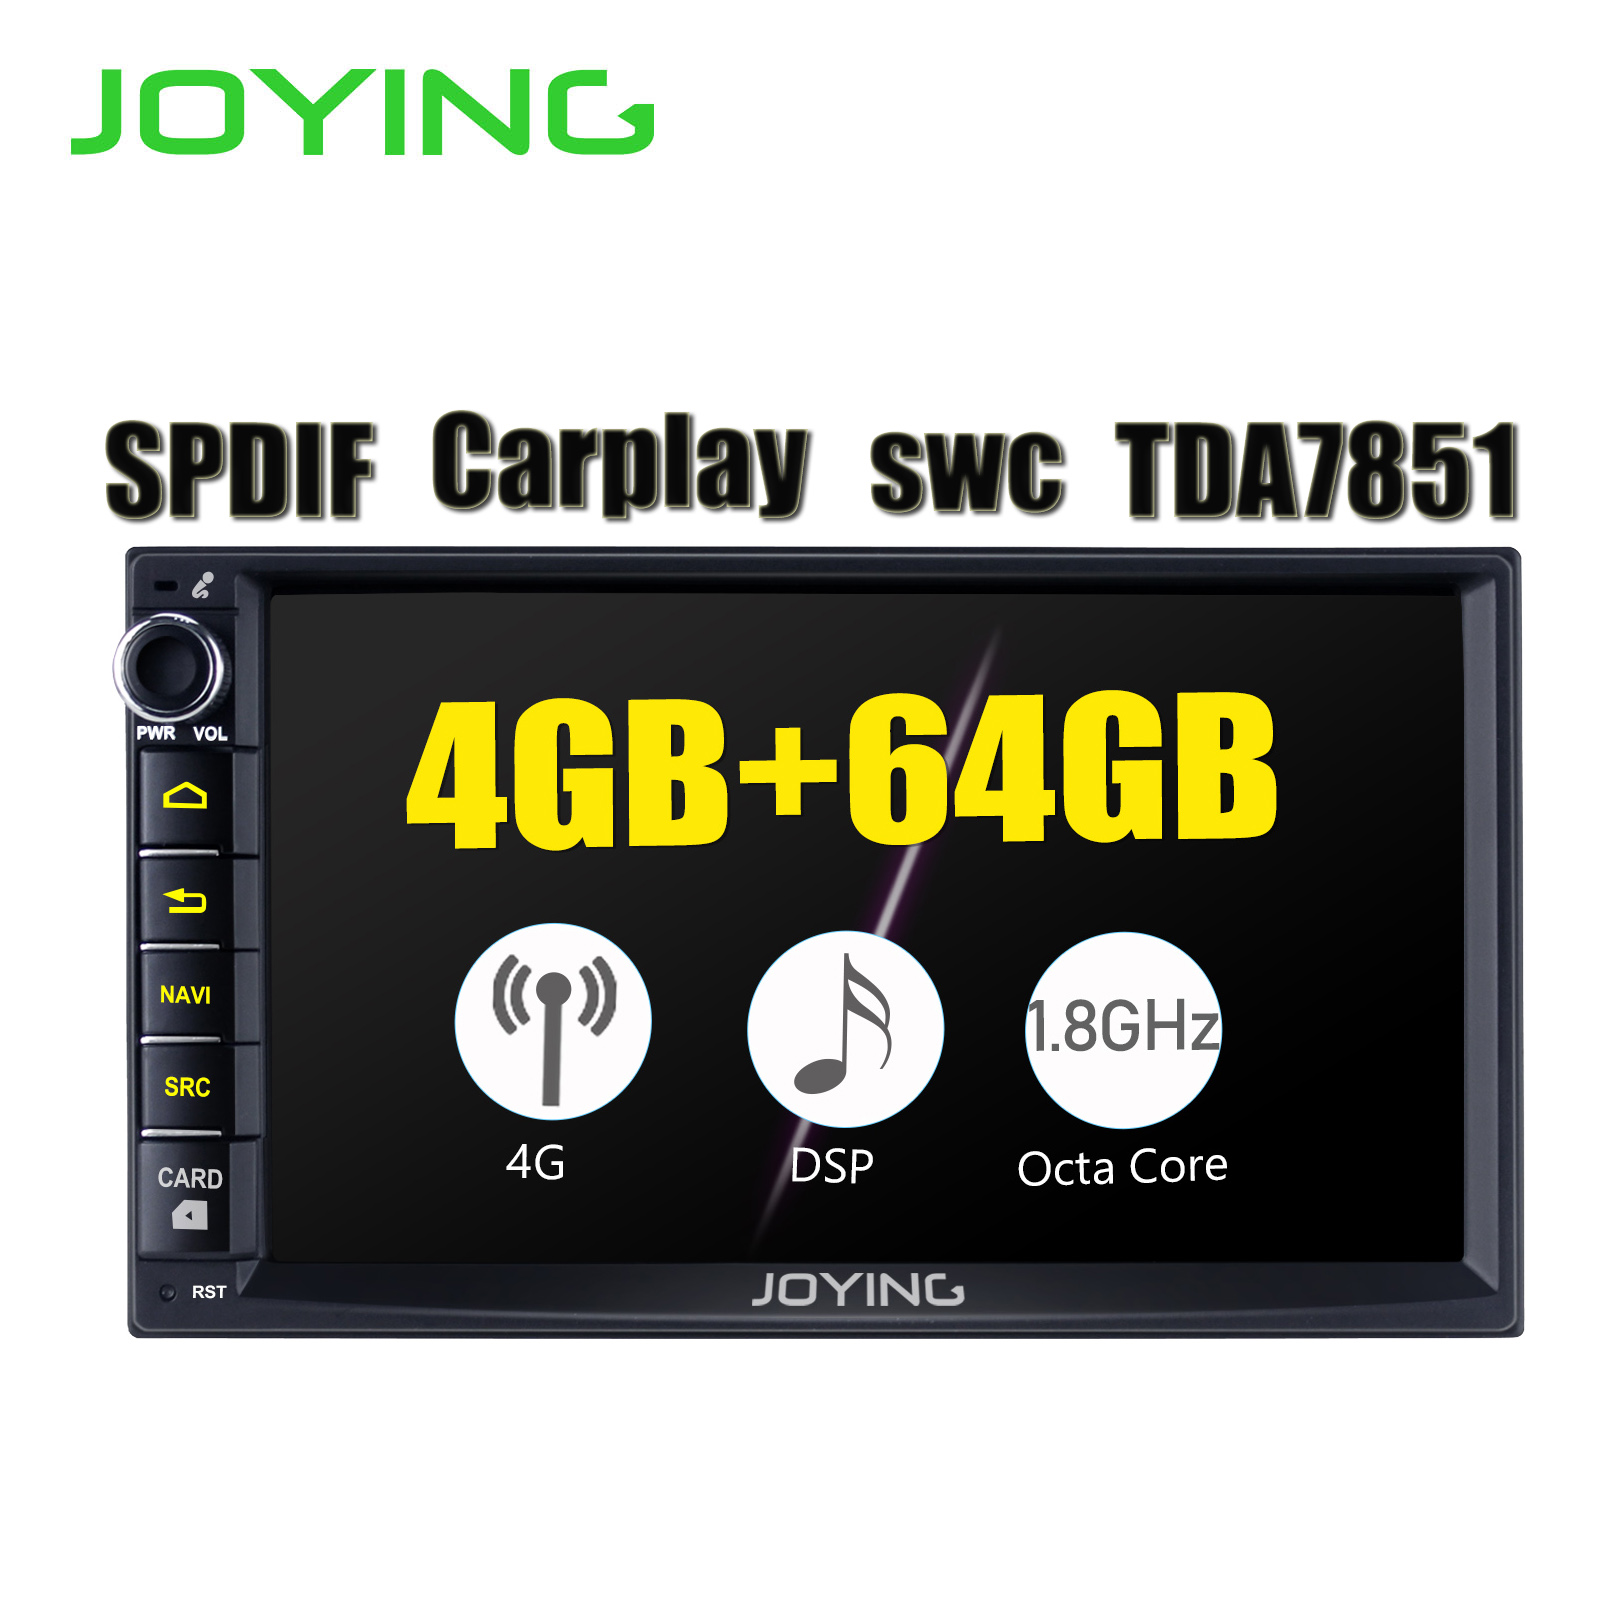 7 Head Unit 2 Din Android 8.1 Universal Car Radio Stereo Multimedia No DVD Player Built in DSP Carplay Android Auto image